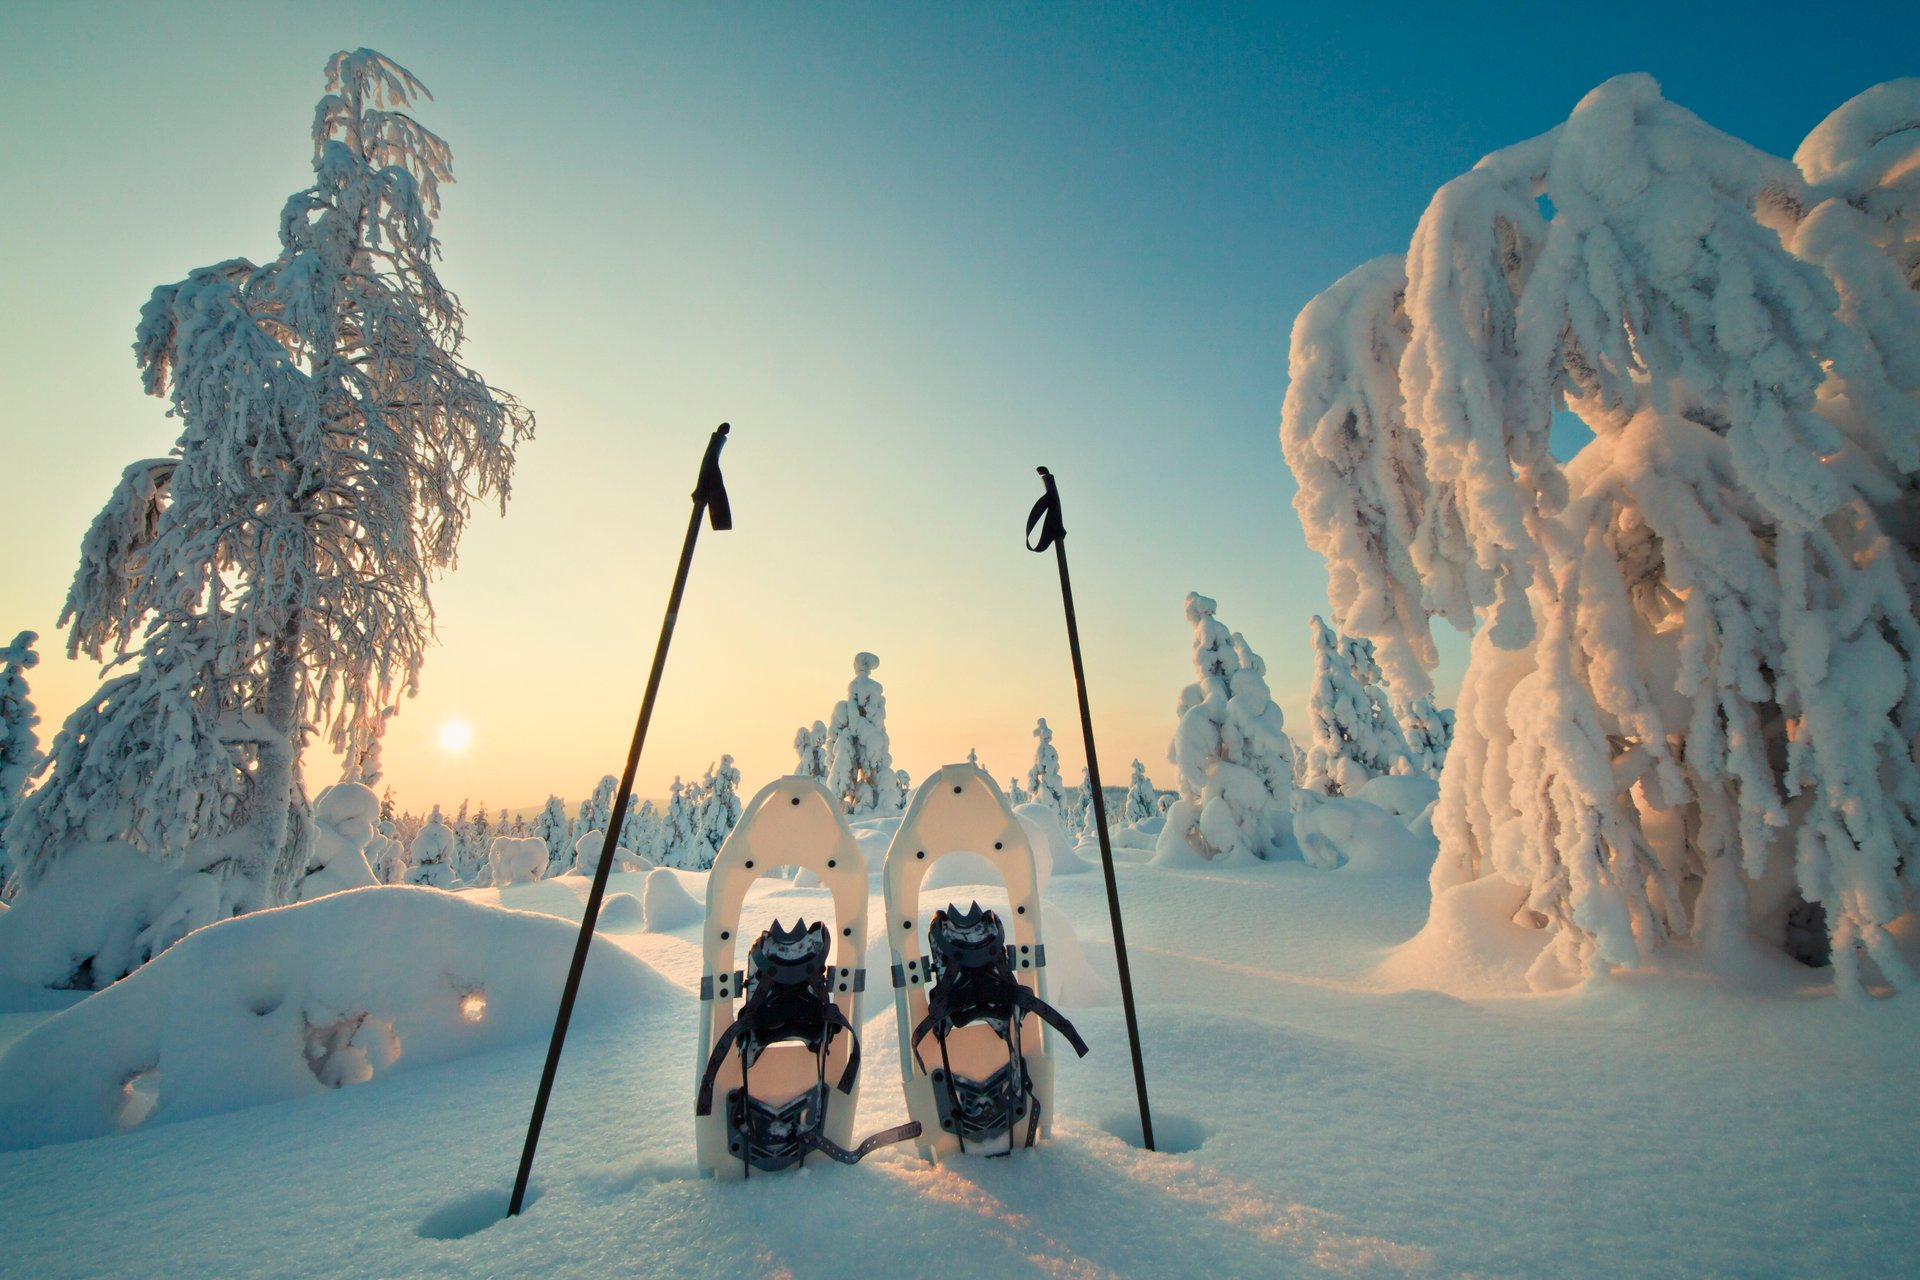 Snowshoeing in Finland 2020 - Best Time